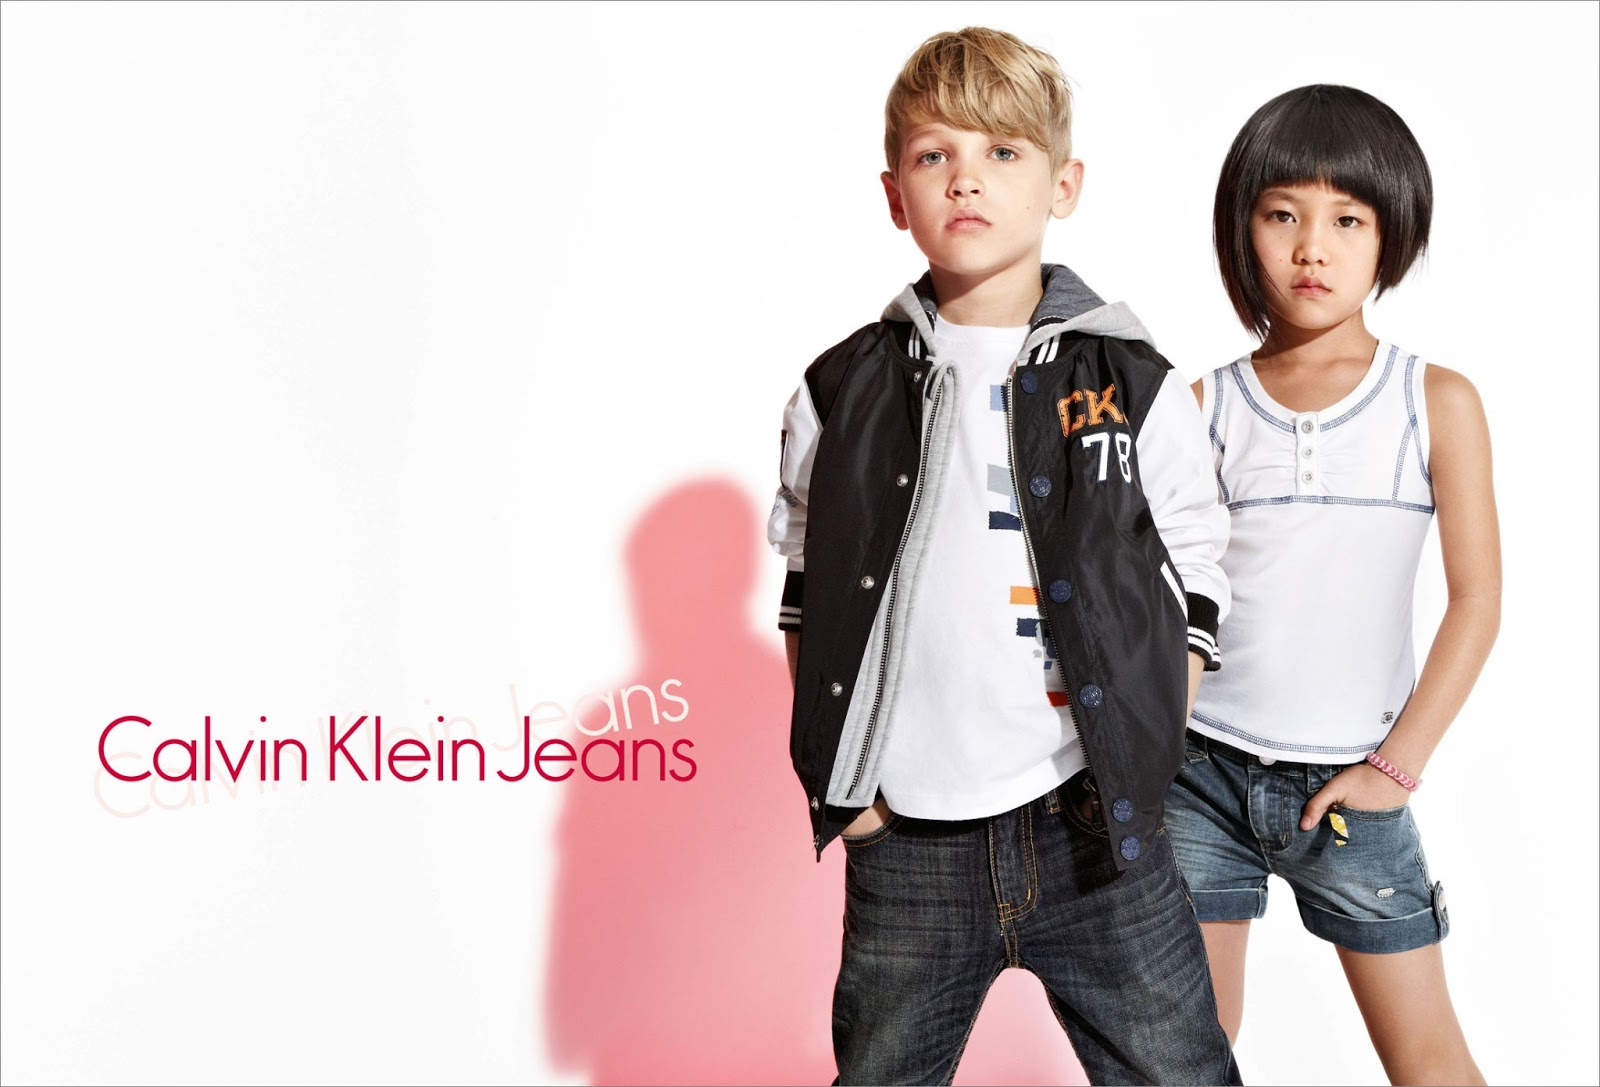 CKJ-kids-spread-s13-4.jpg